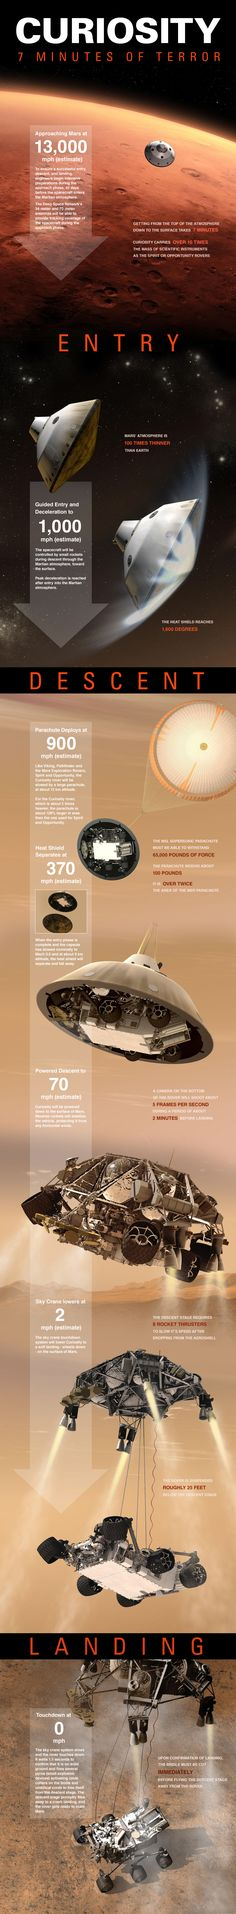 The Entry, Descent and Landing phases for Curiosity (Mars Science Laboratory)